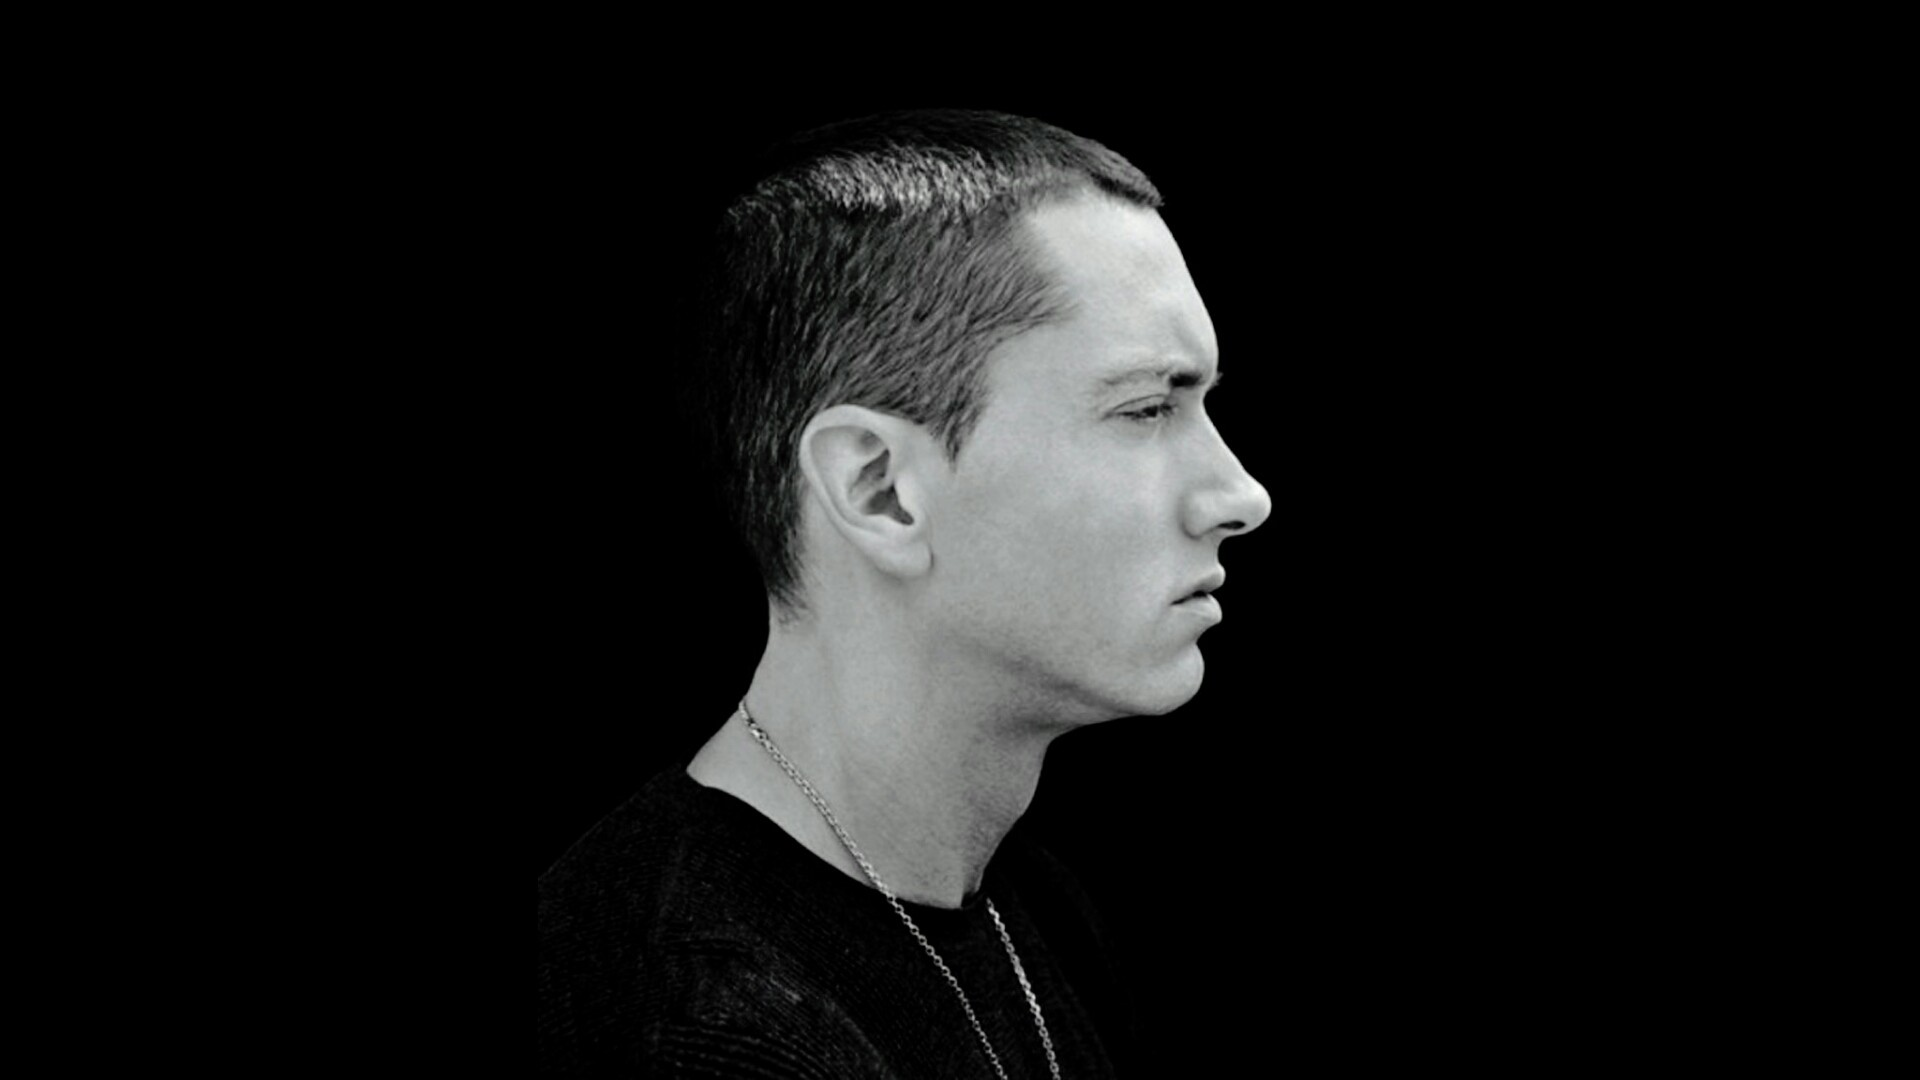 1920x1080 Eminem Full HD Wallpaper